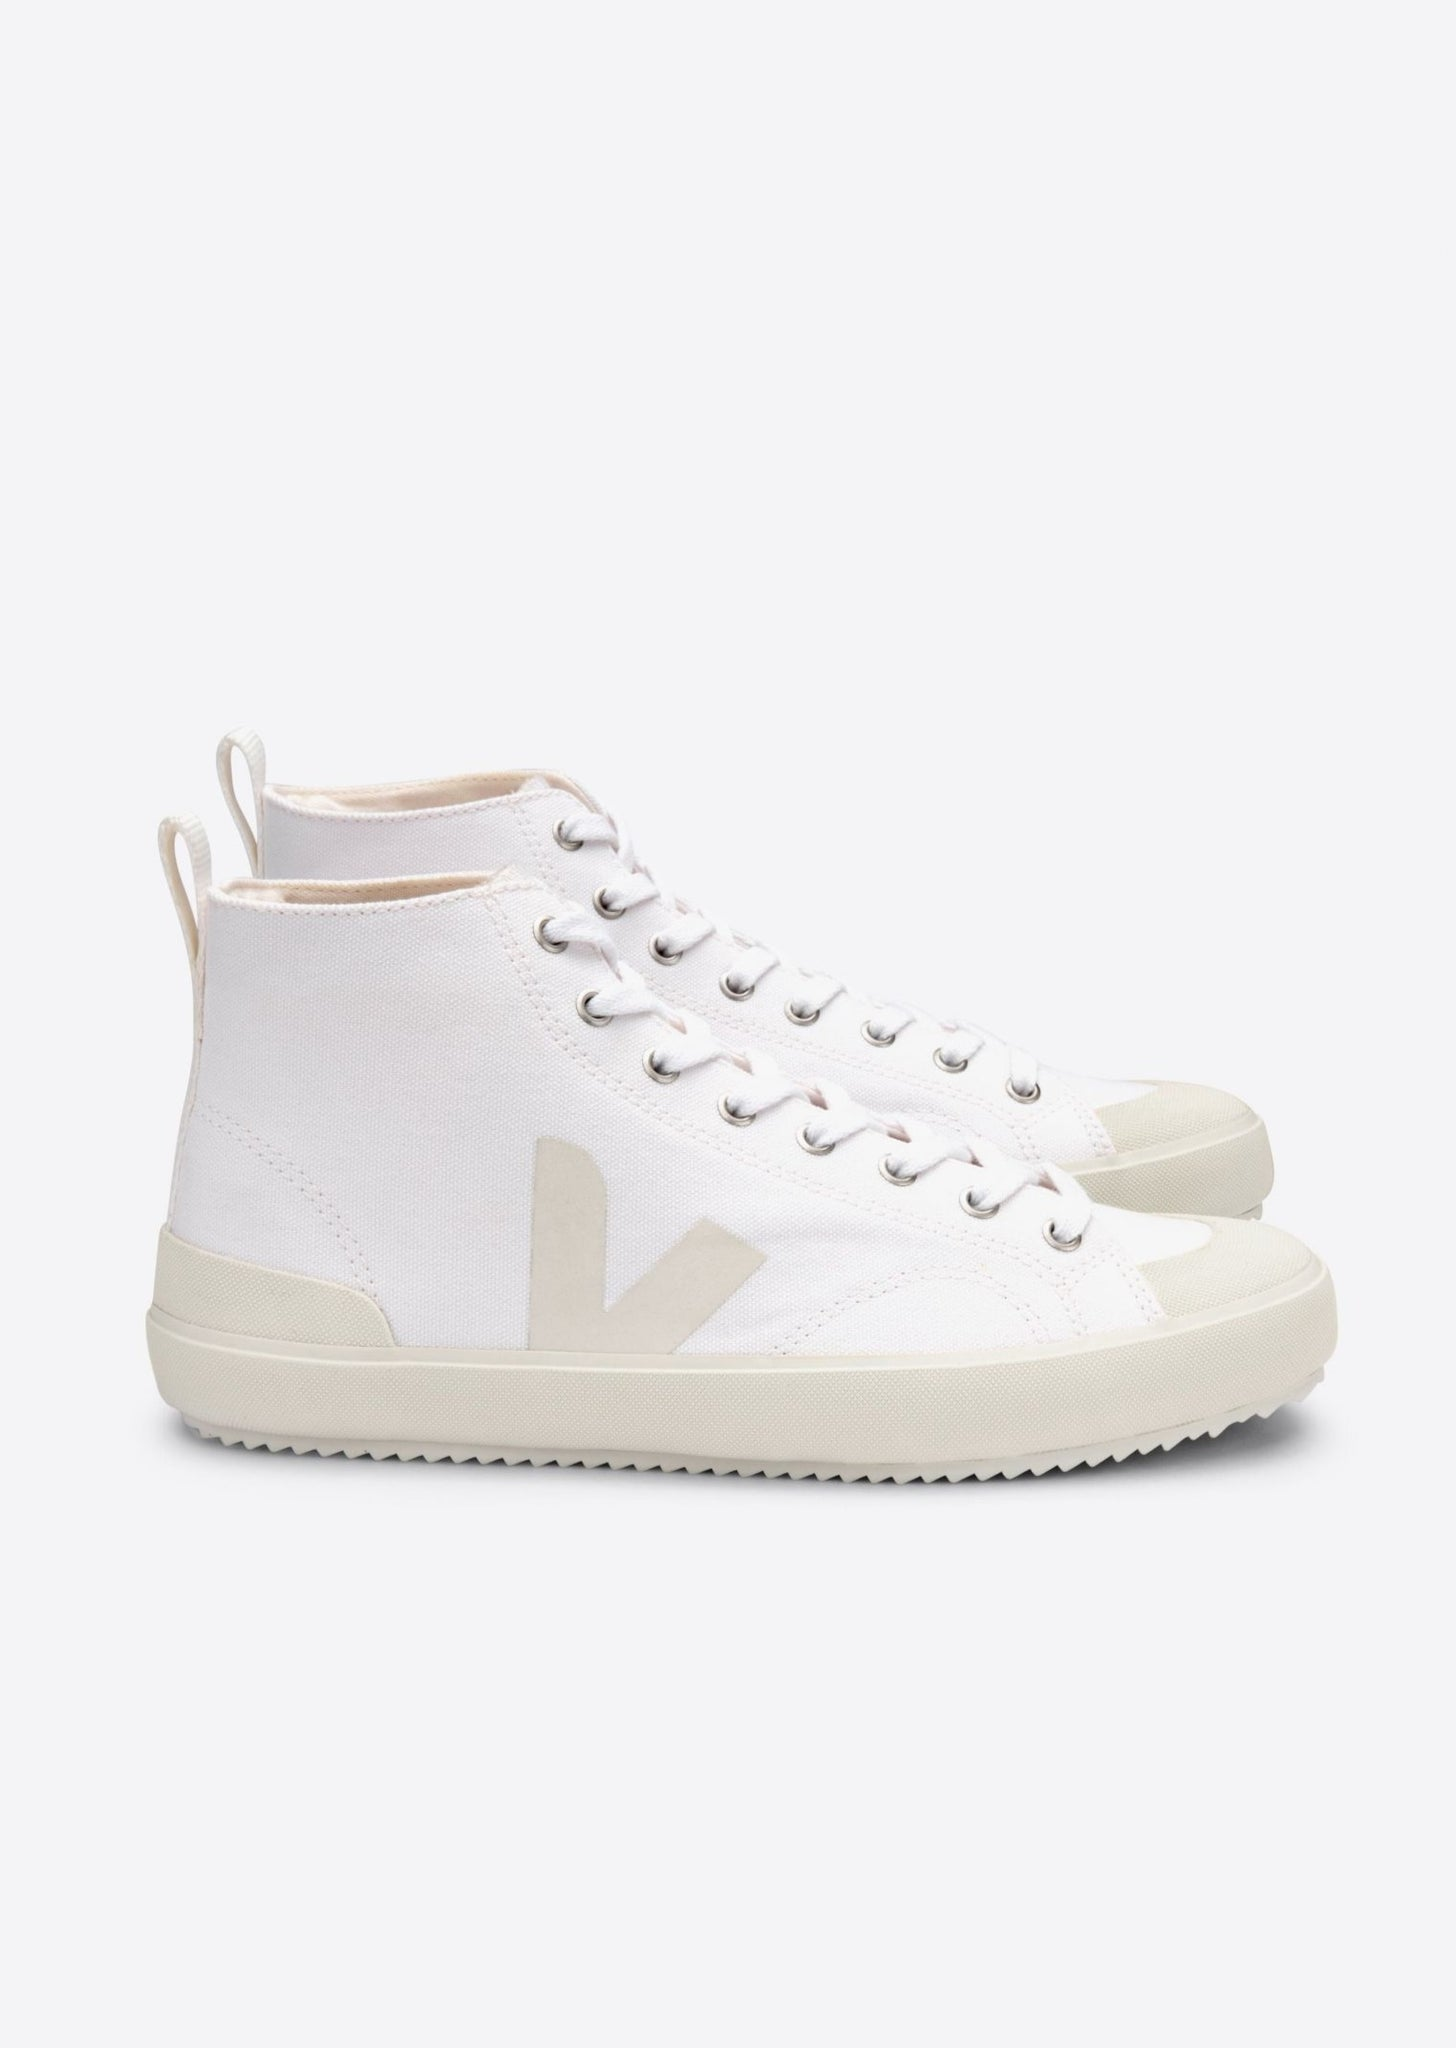 Nova Canvas High Top Sneakers - White Pierre